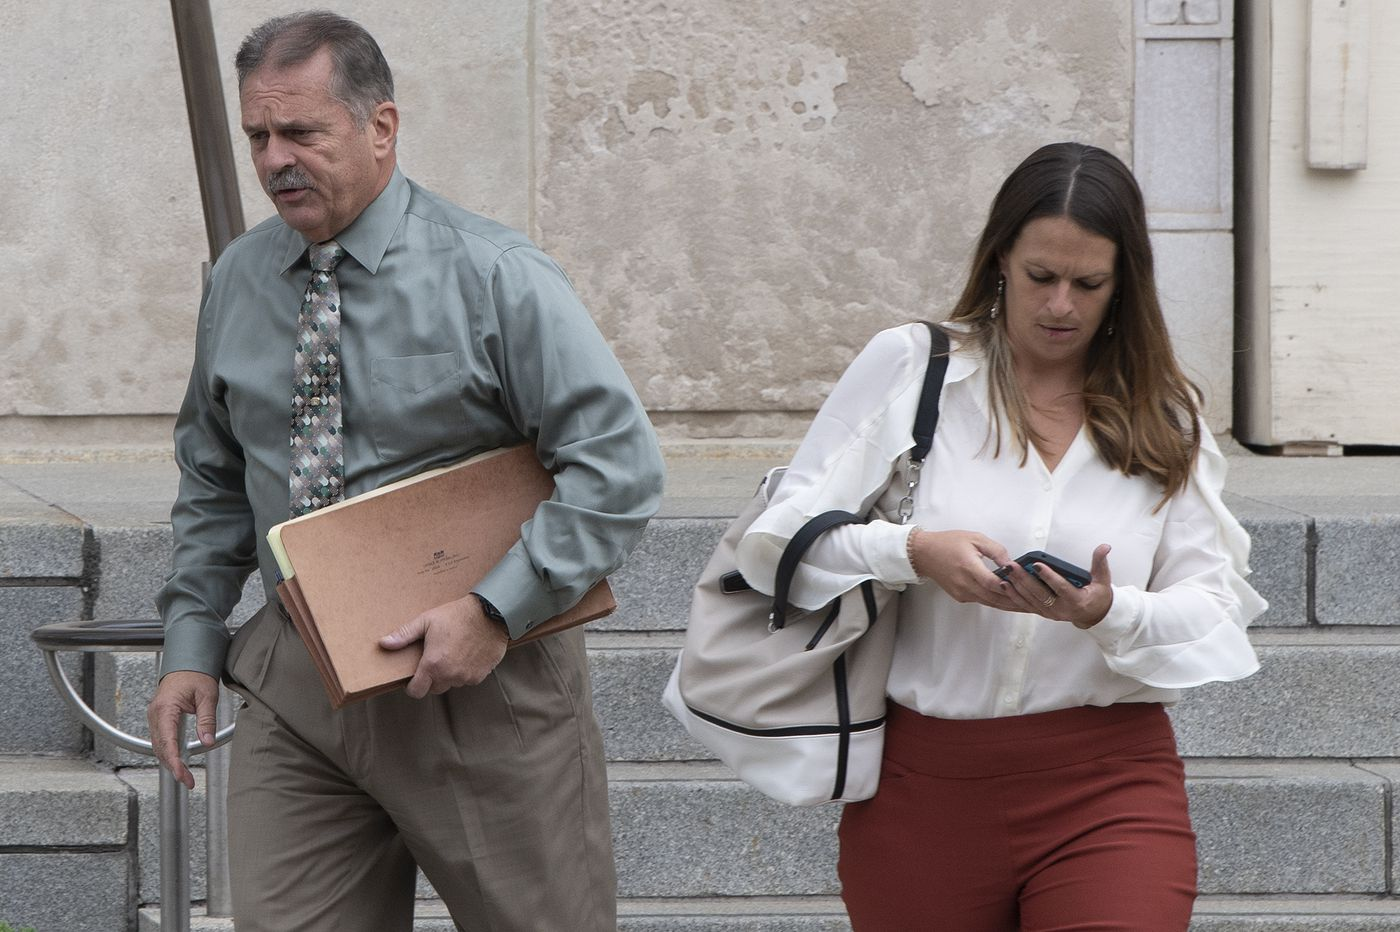 Jury deliberates for 5th day without verdict in hate-crime assault trial of former police chief